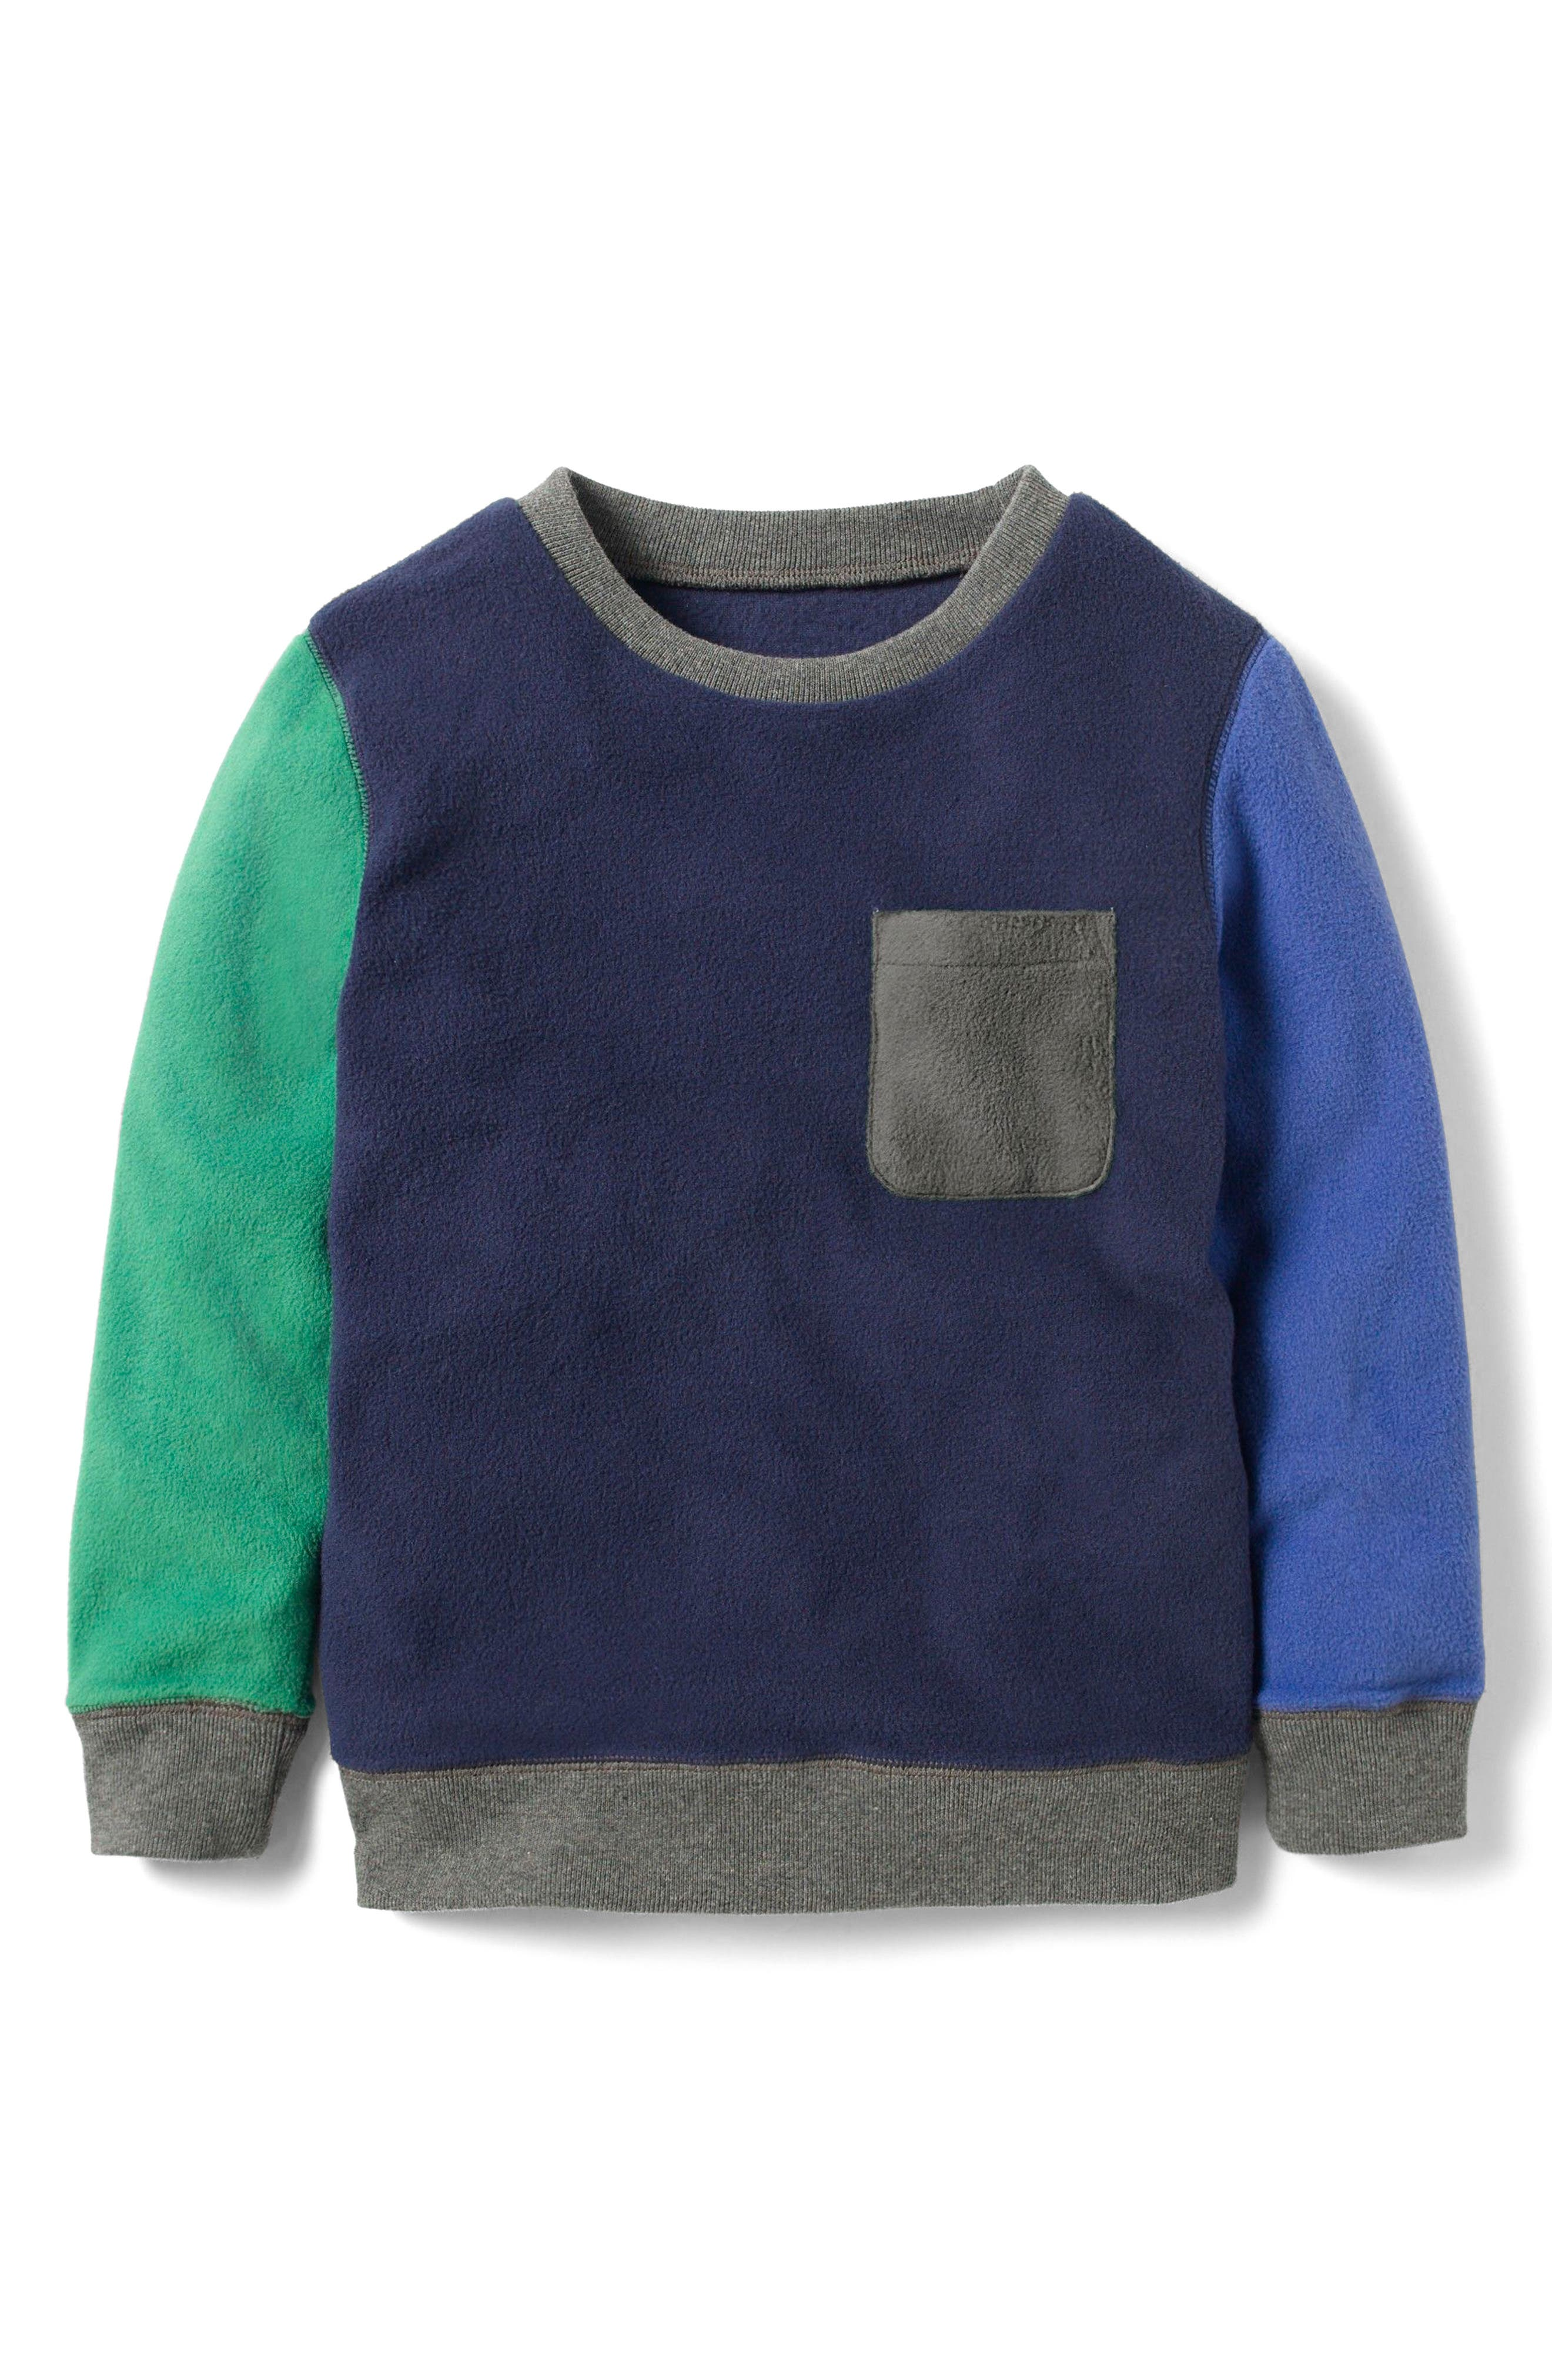 Main Image - Mini Boden Colorblock Fleece Sweatshirt (Toddler Boys, Little Boys & Big Boys)